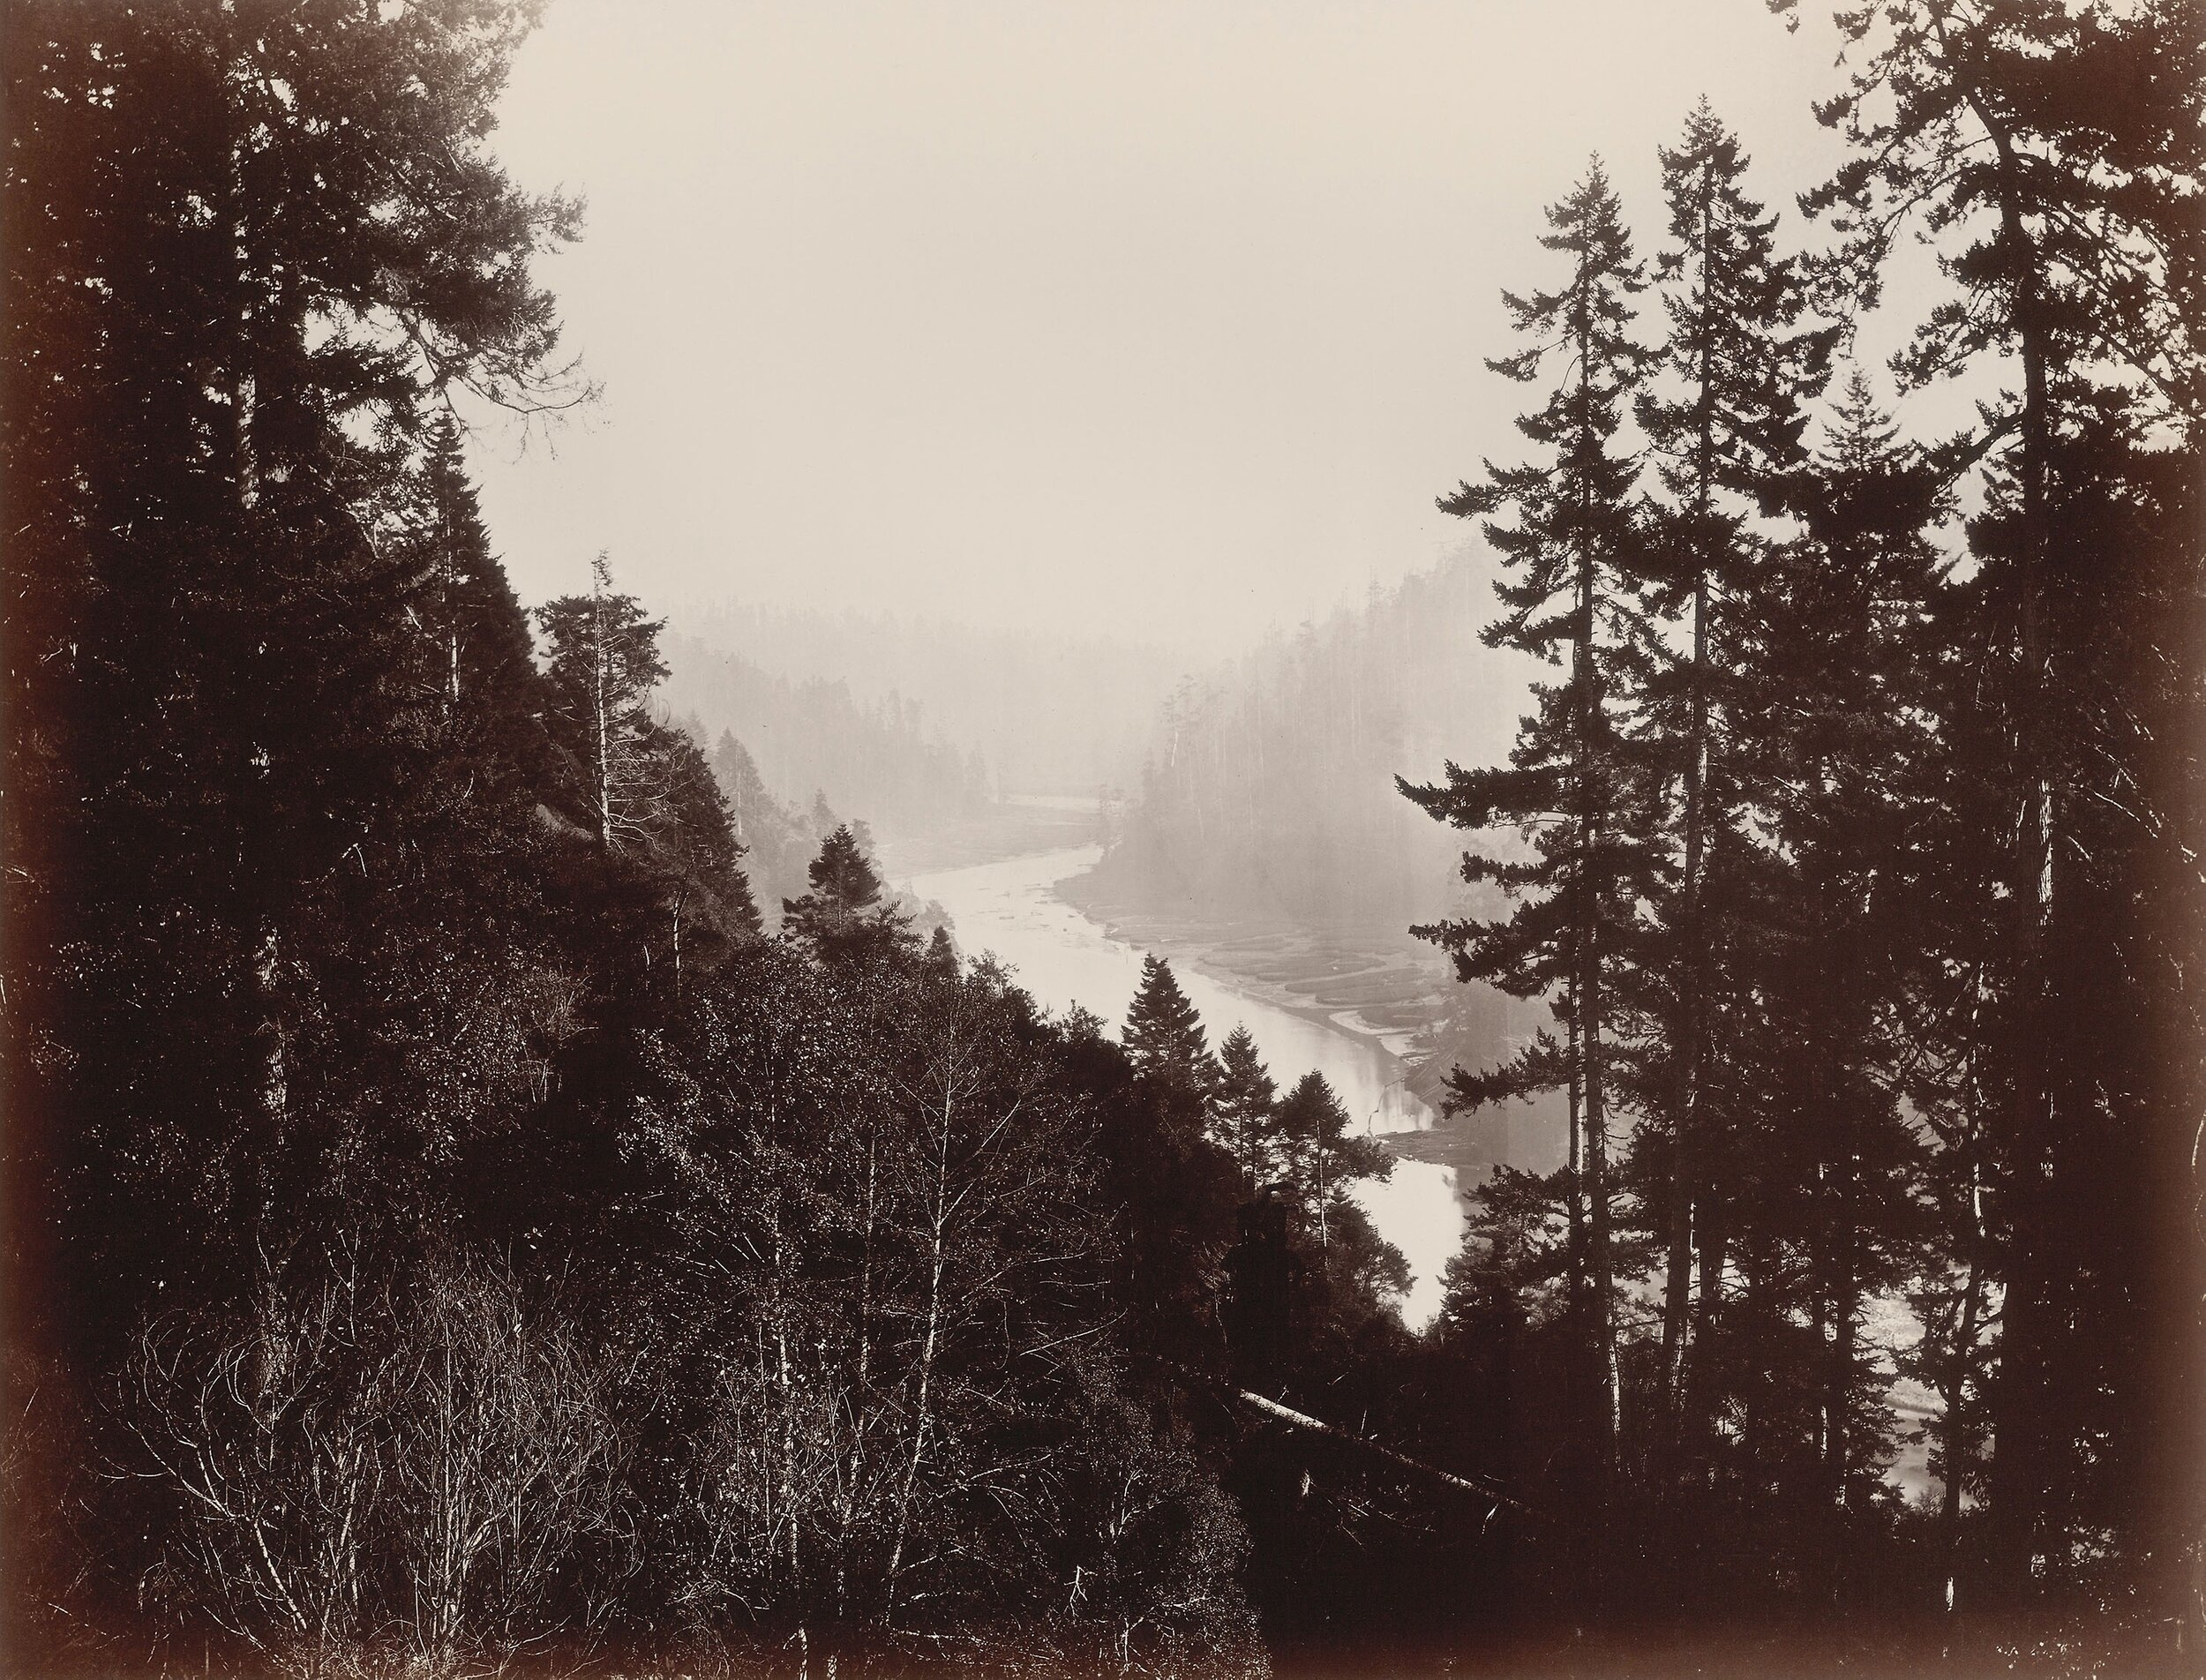 Big River, from the Rancherie, Mendocino, California, 1863  by Carleton Watkins